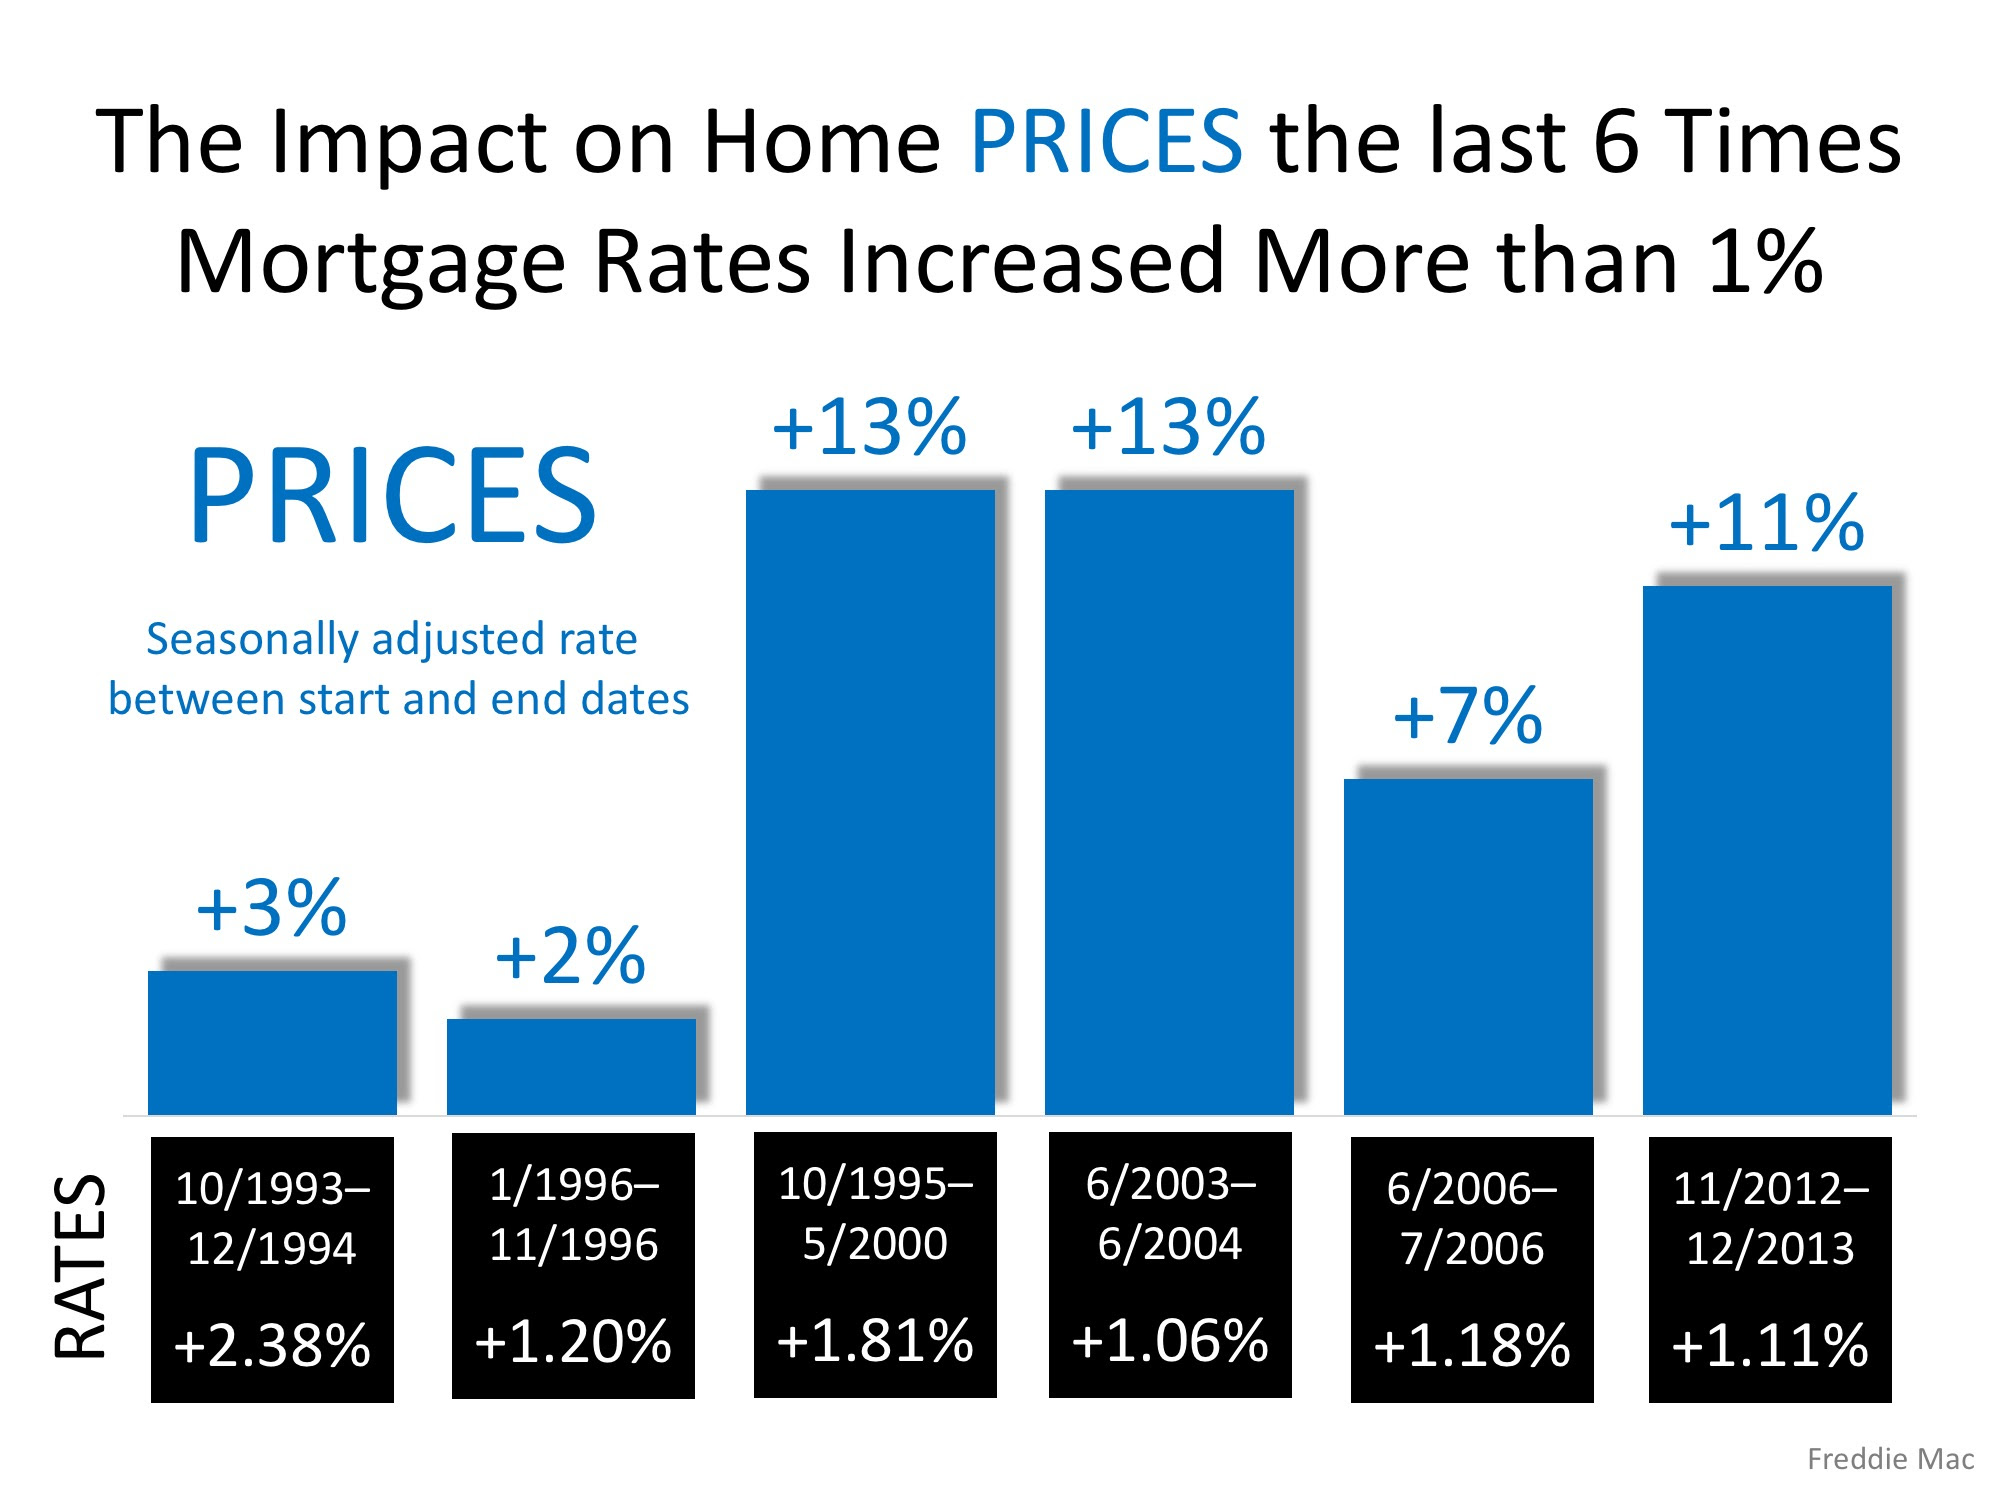 Impact on Home Prices last 6 times Rates Increased by 1% or More